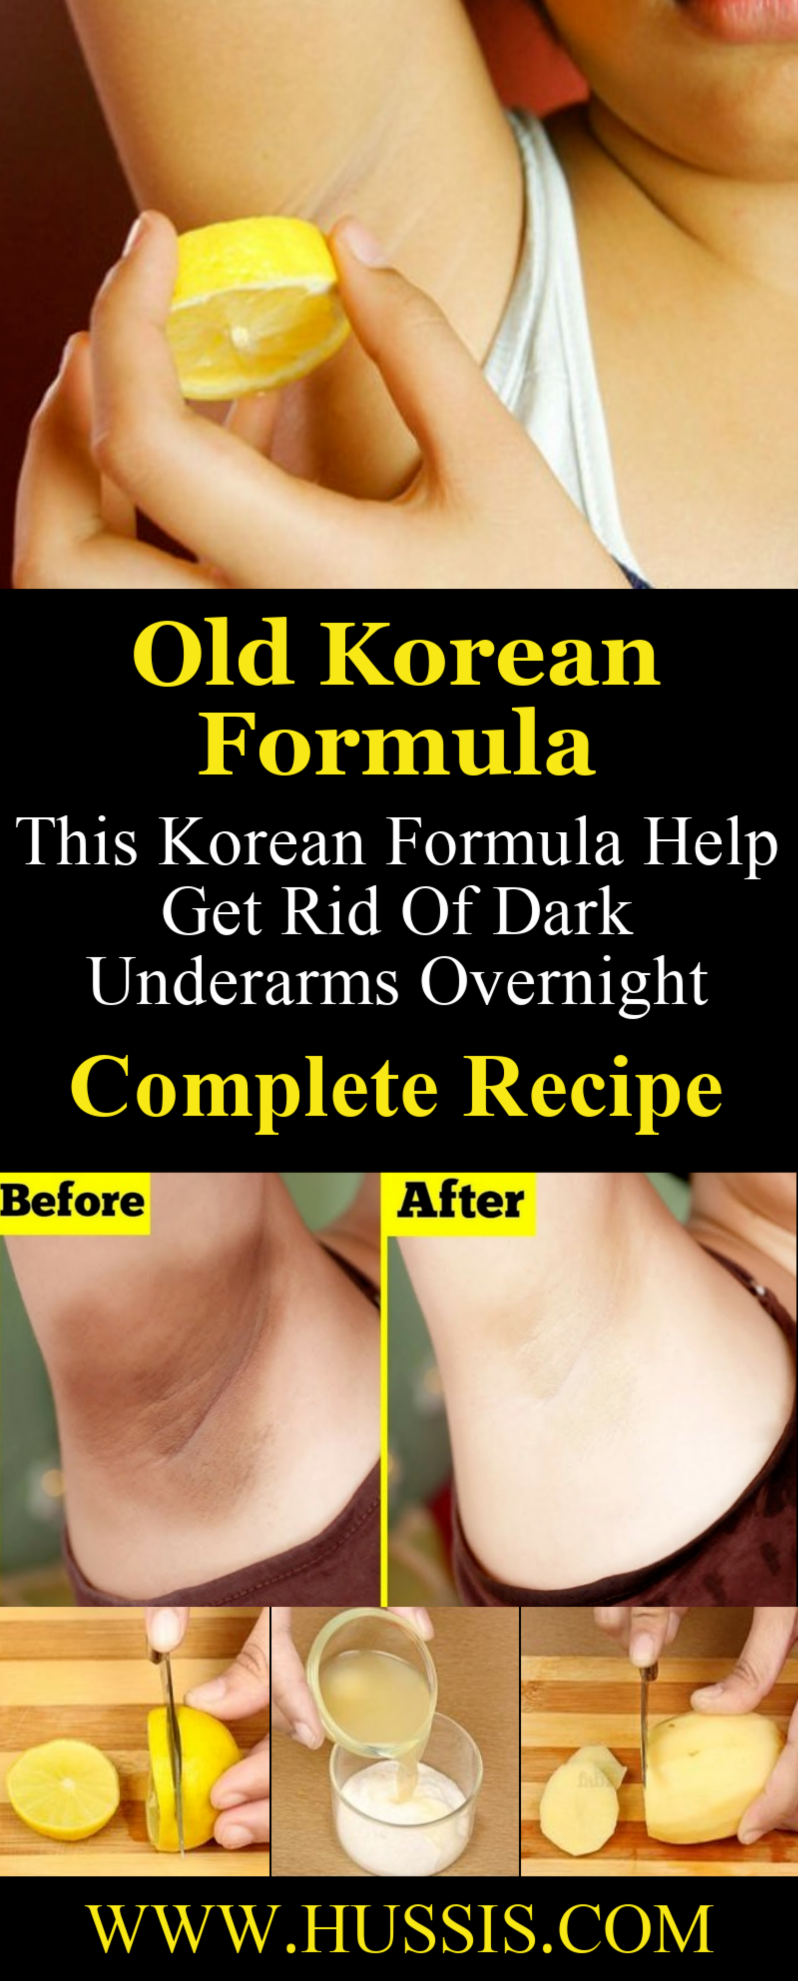 Old Korean Formula This Korean Formula Help Get Rid Of Dark Underarms Overnight Complete Recipe Dark Underarms Dark Armpits Natural Skin Care